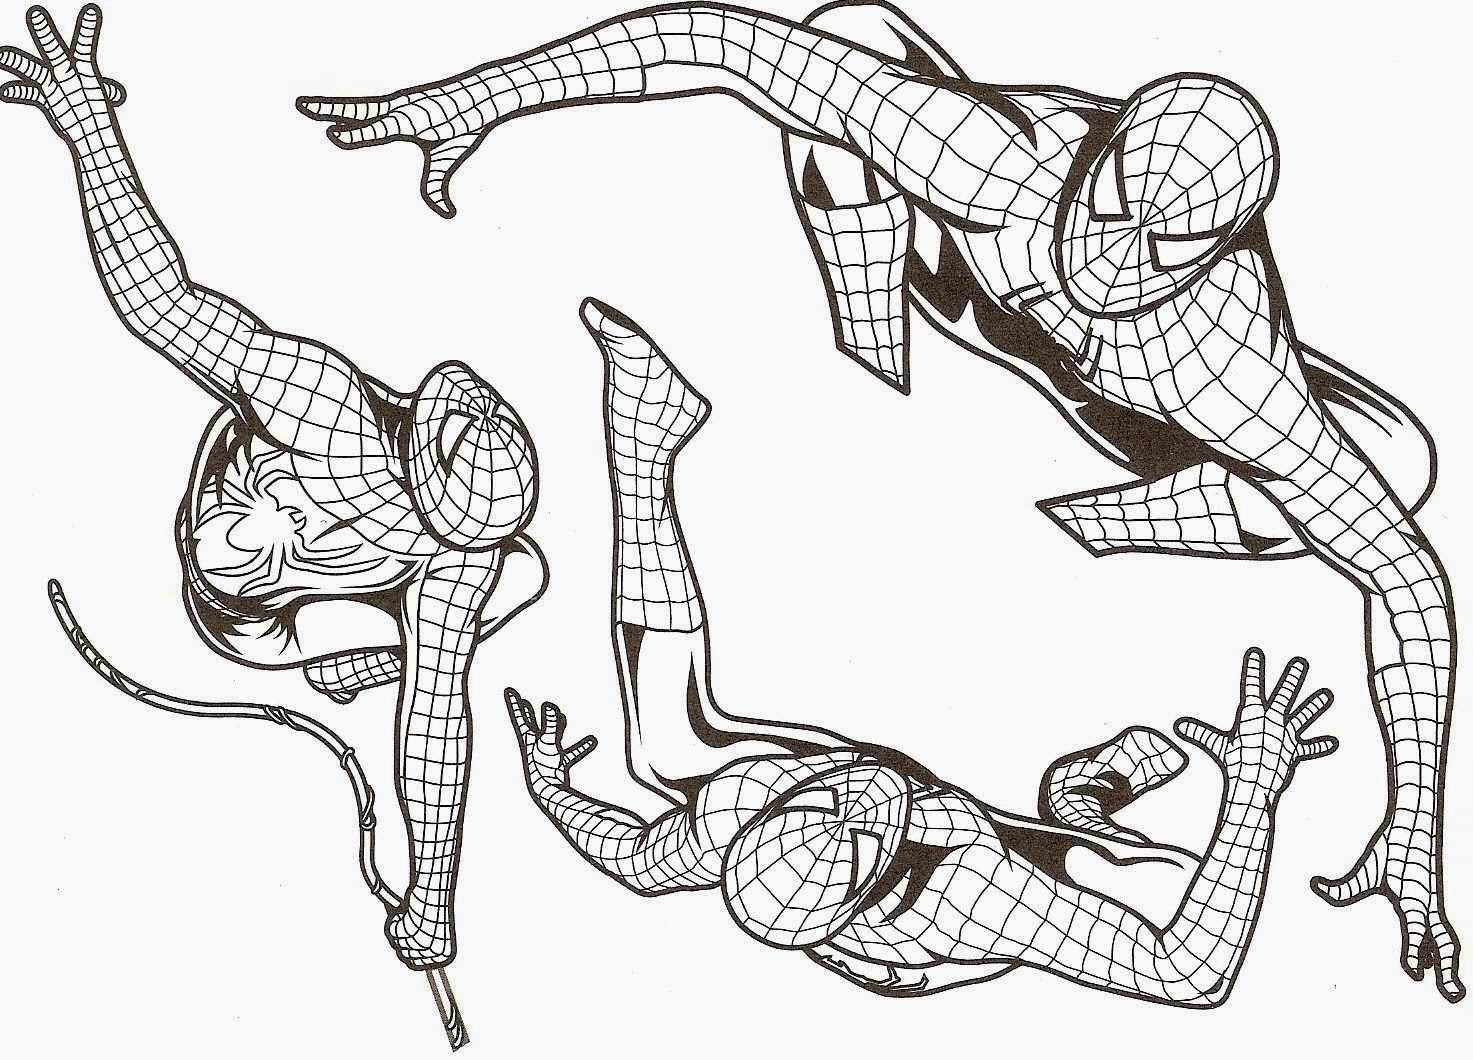 Spiderman Coloriage Gratuit Imprimer | Liberate destiné Coloriage De Spiderman